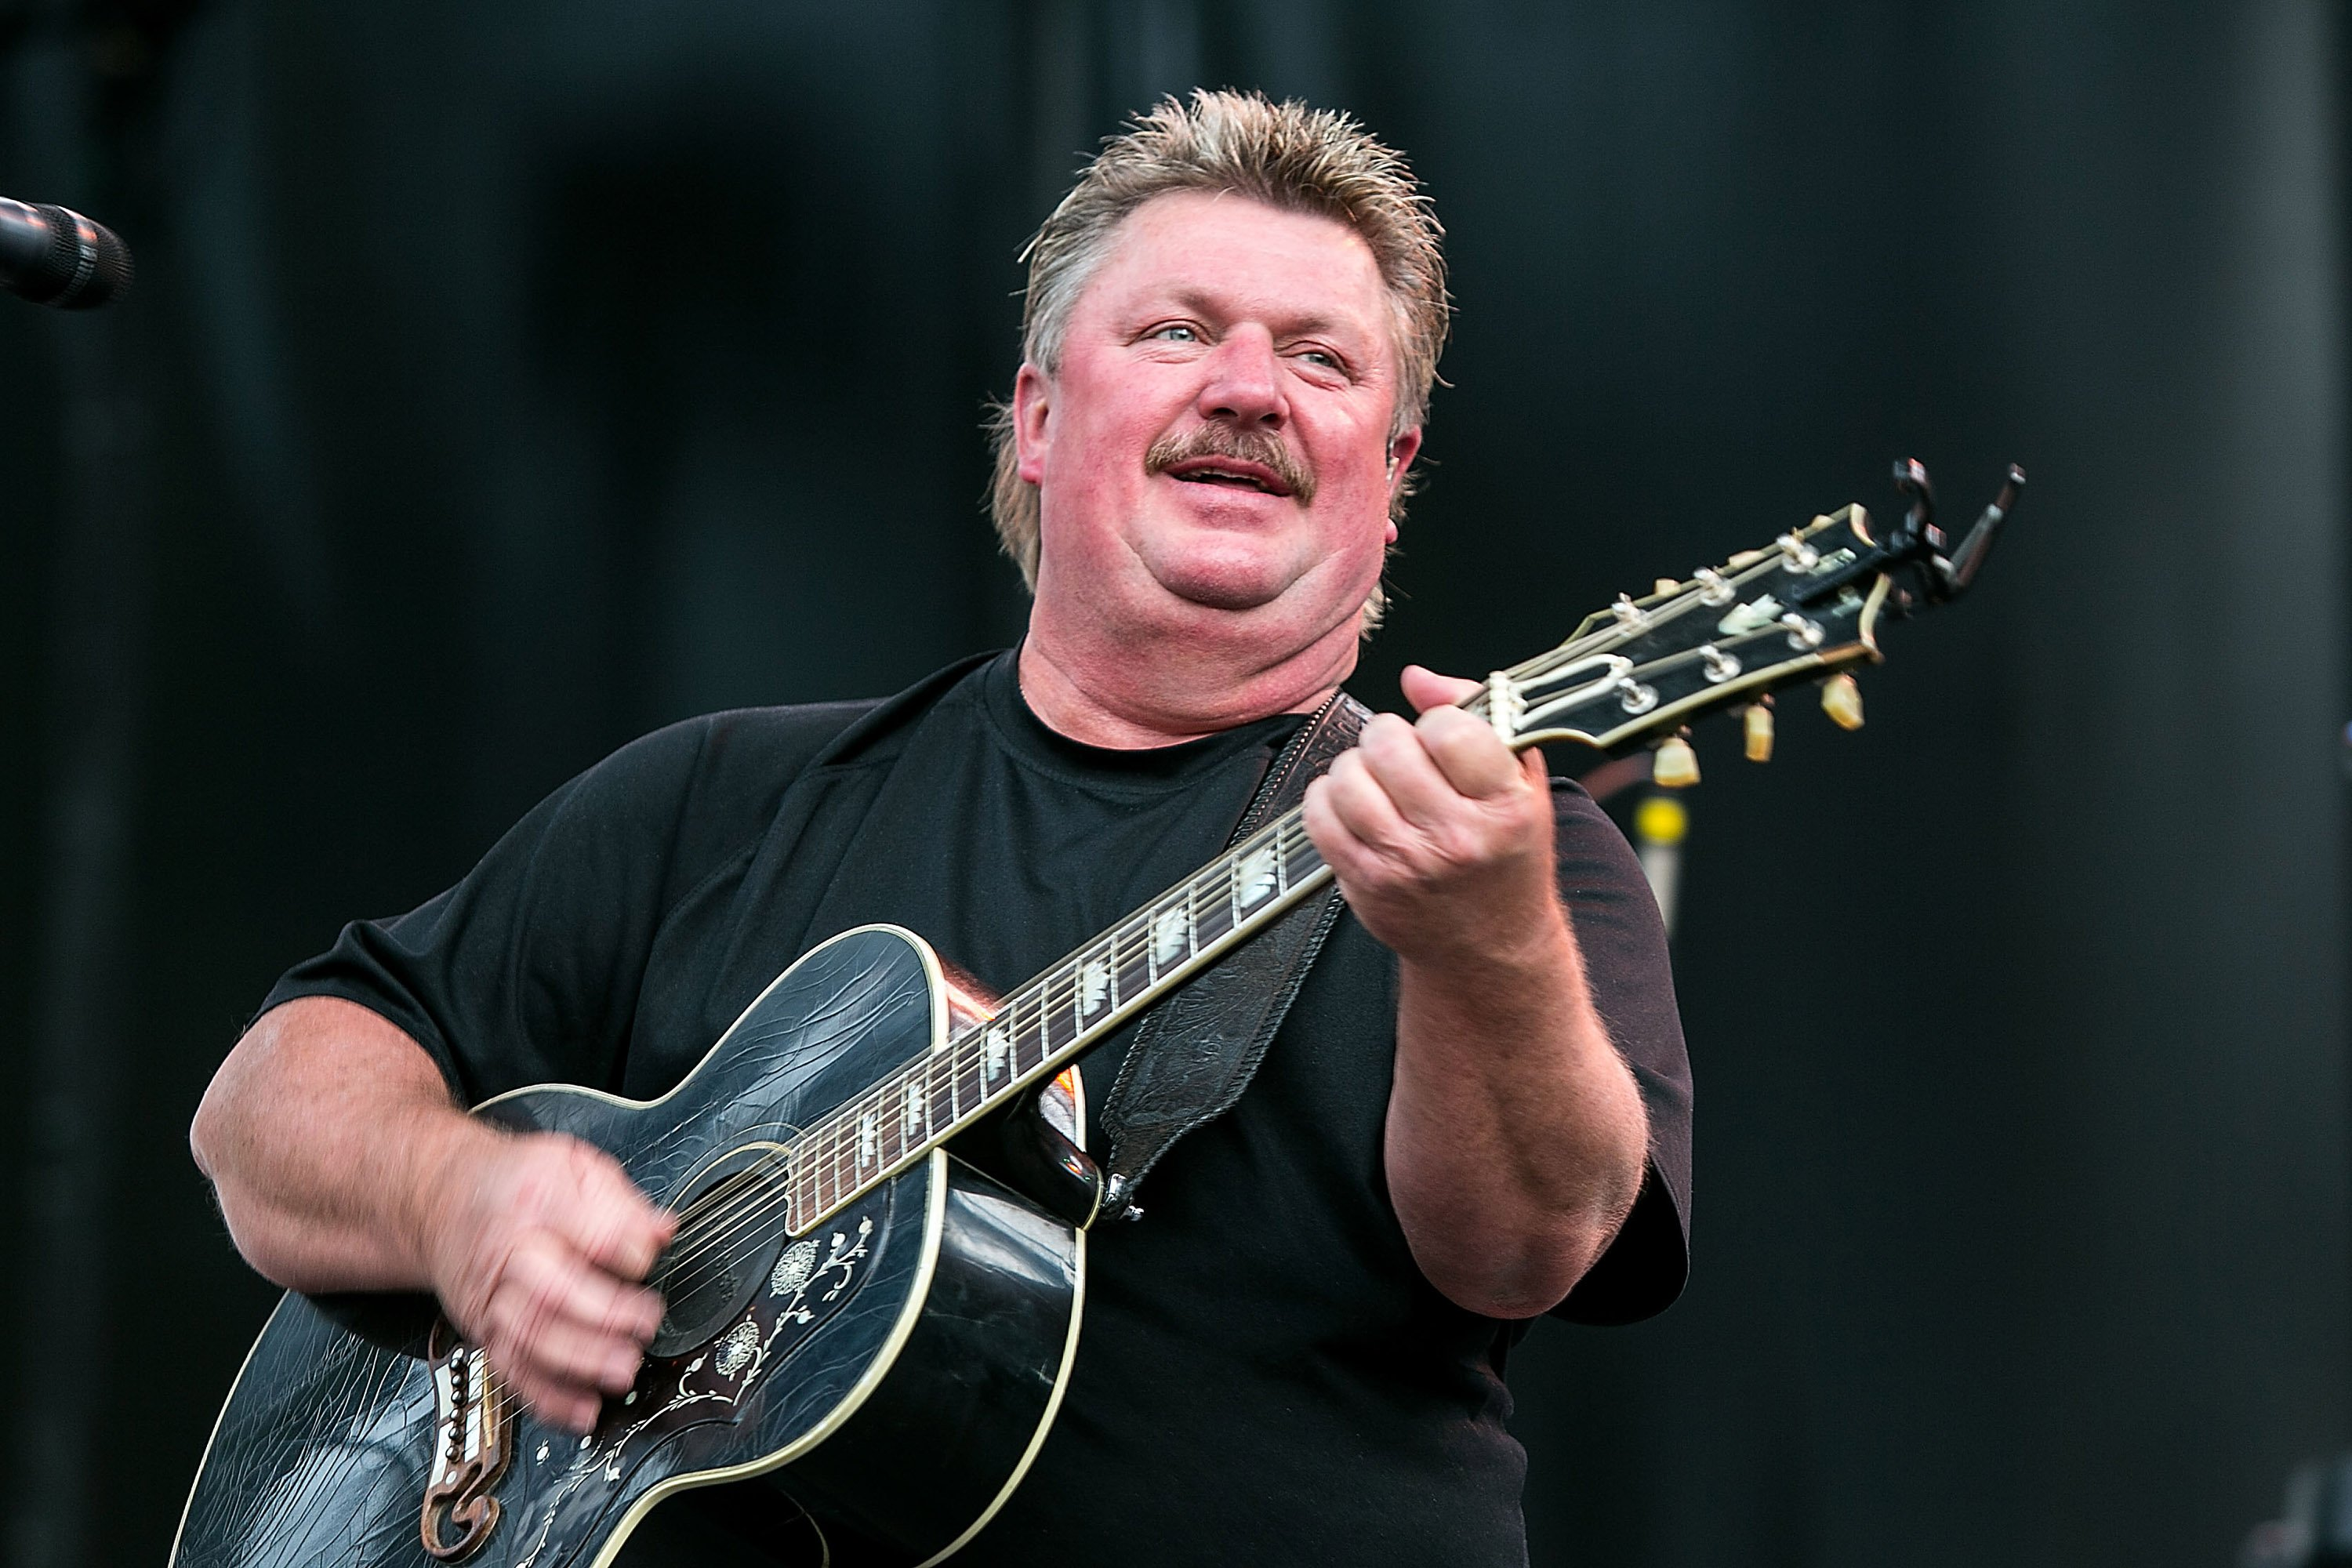 Joe Diffie performs on stage at the Watershed Music Festival 2014 on August 2, 2014, in George, Washington. | Source: Getty Images.